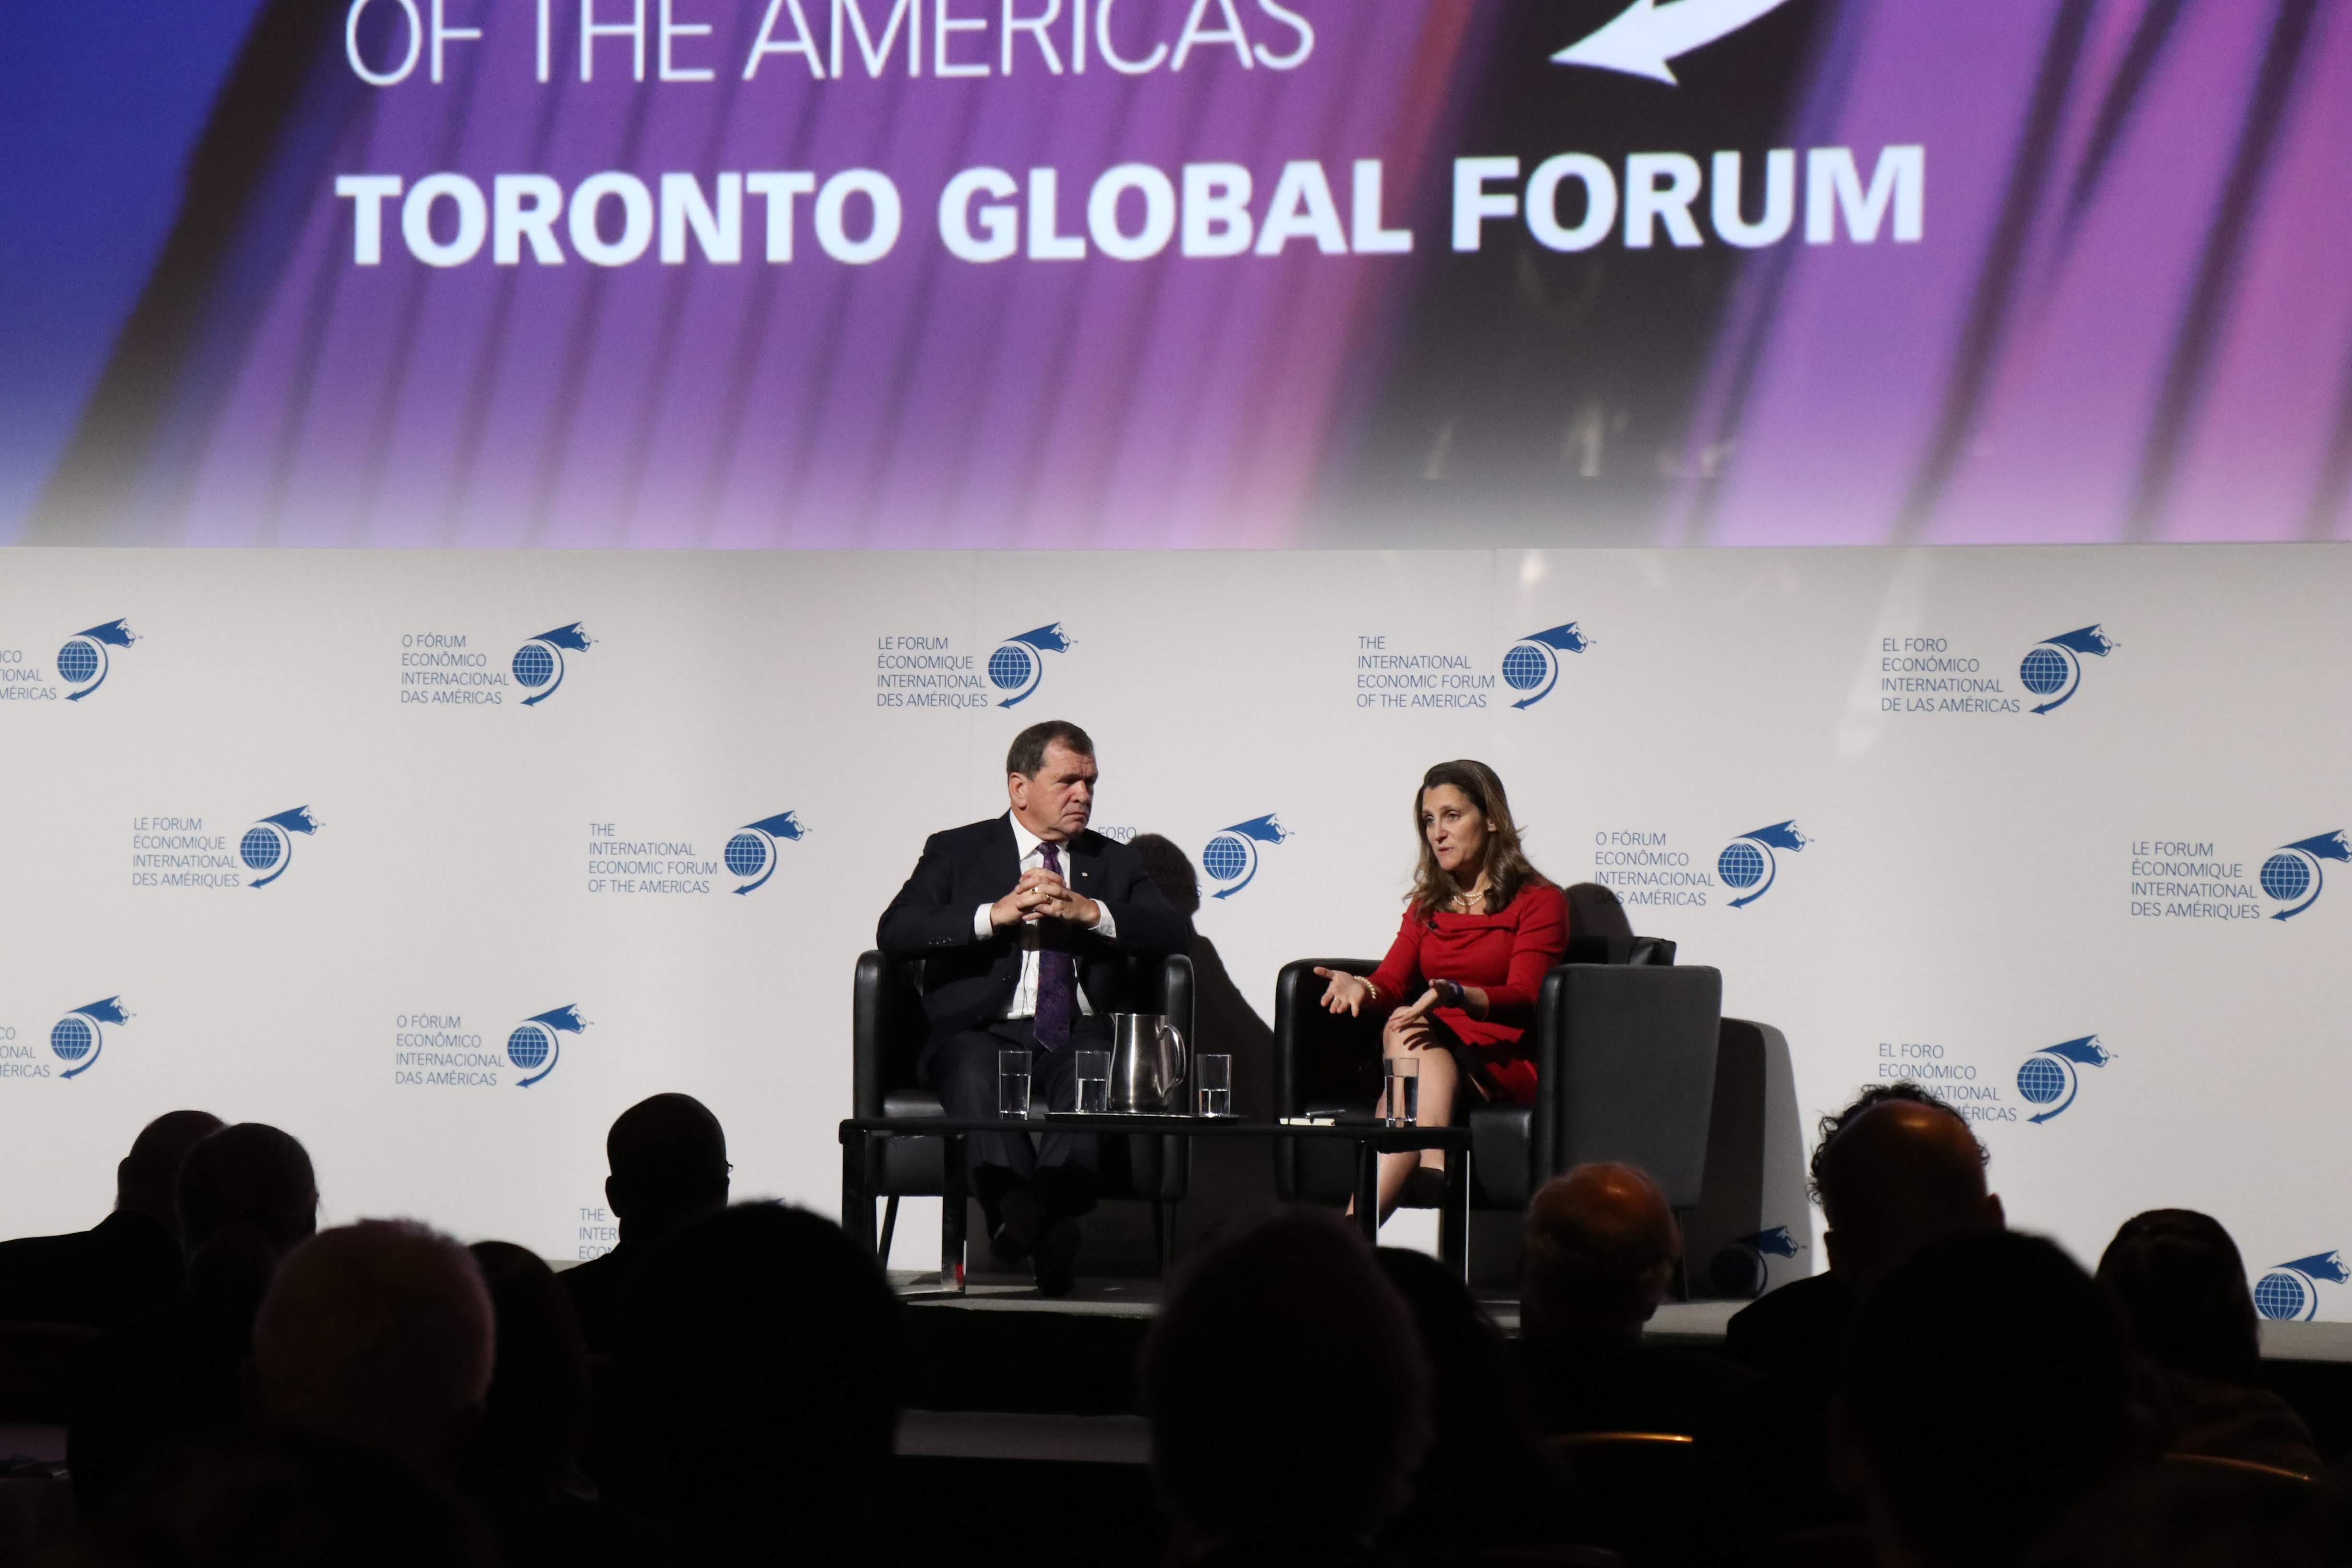 Fireside Chat - Chrystia Freeland, Minister of Foreign Affairs, Canada interviewed by Frank McKenna, Deputy Chair, TD Bank Financial Group